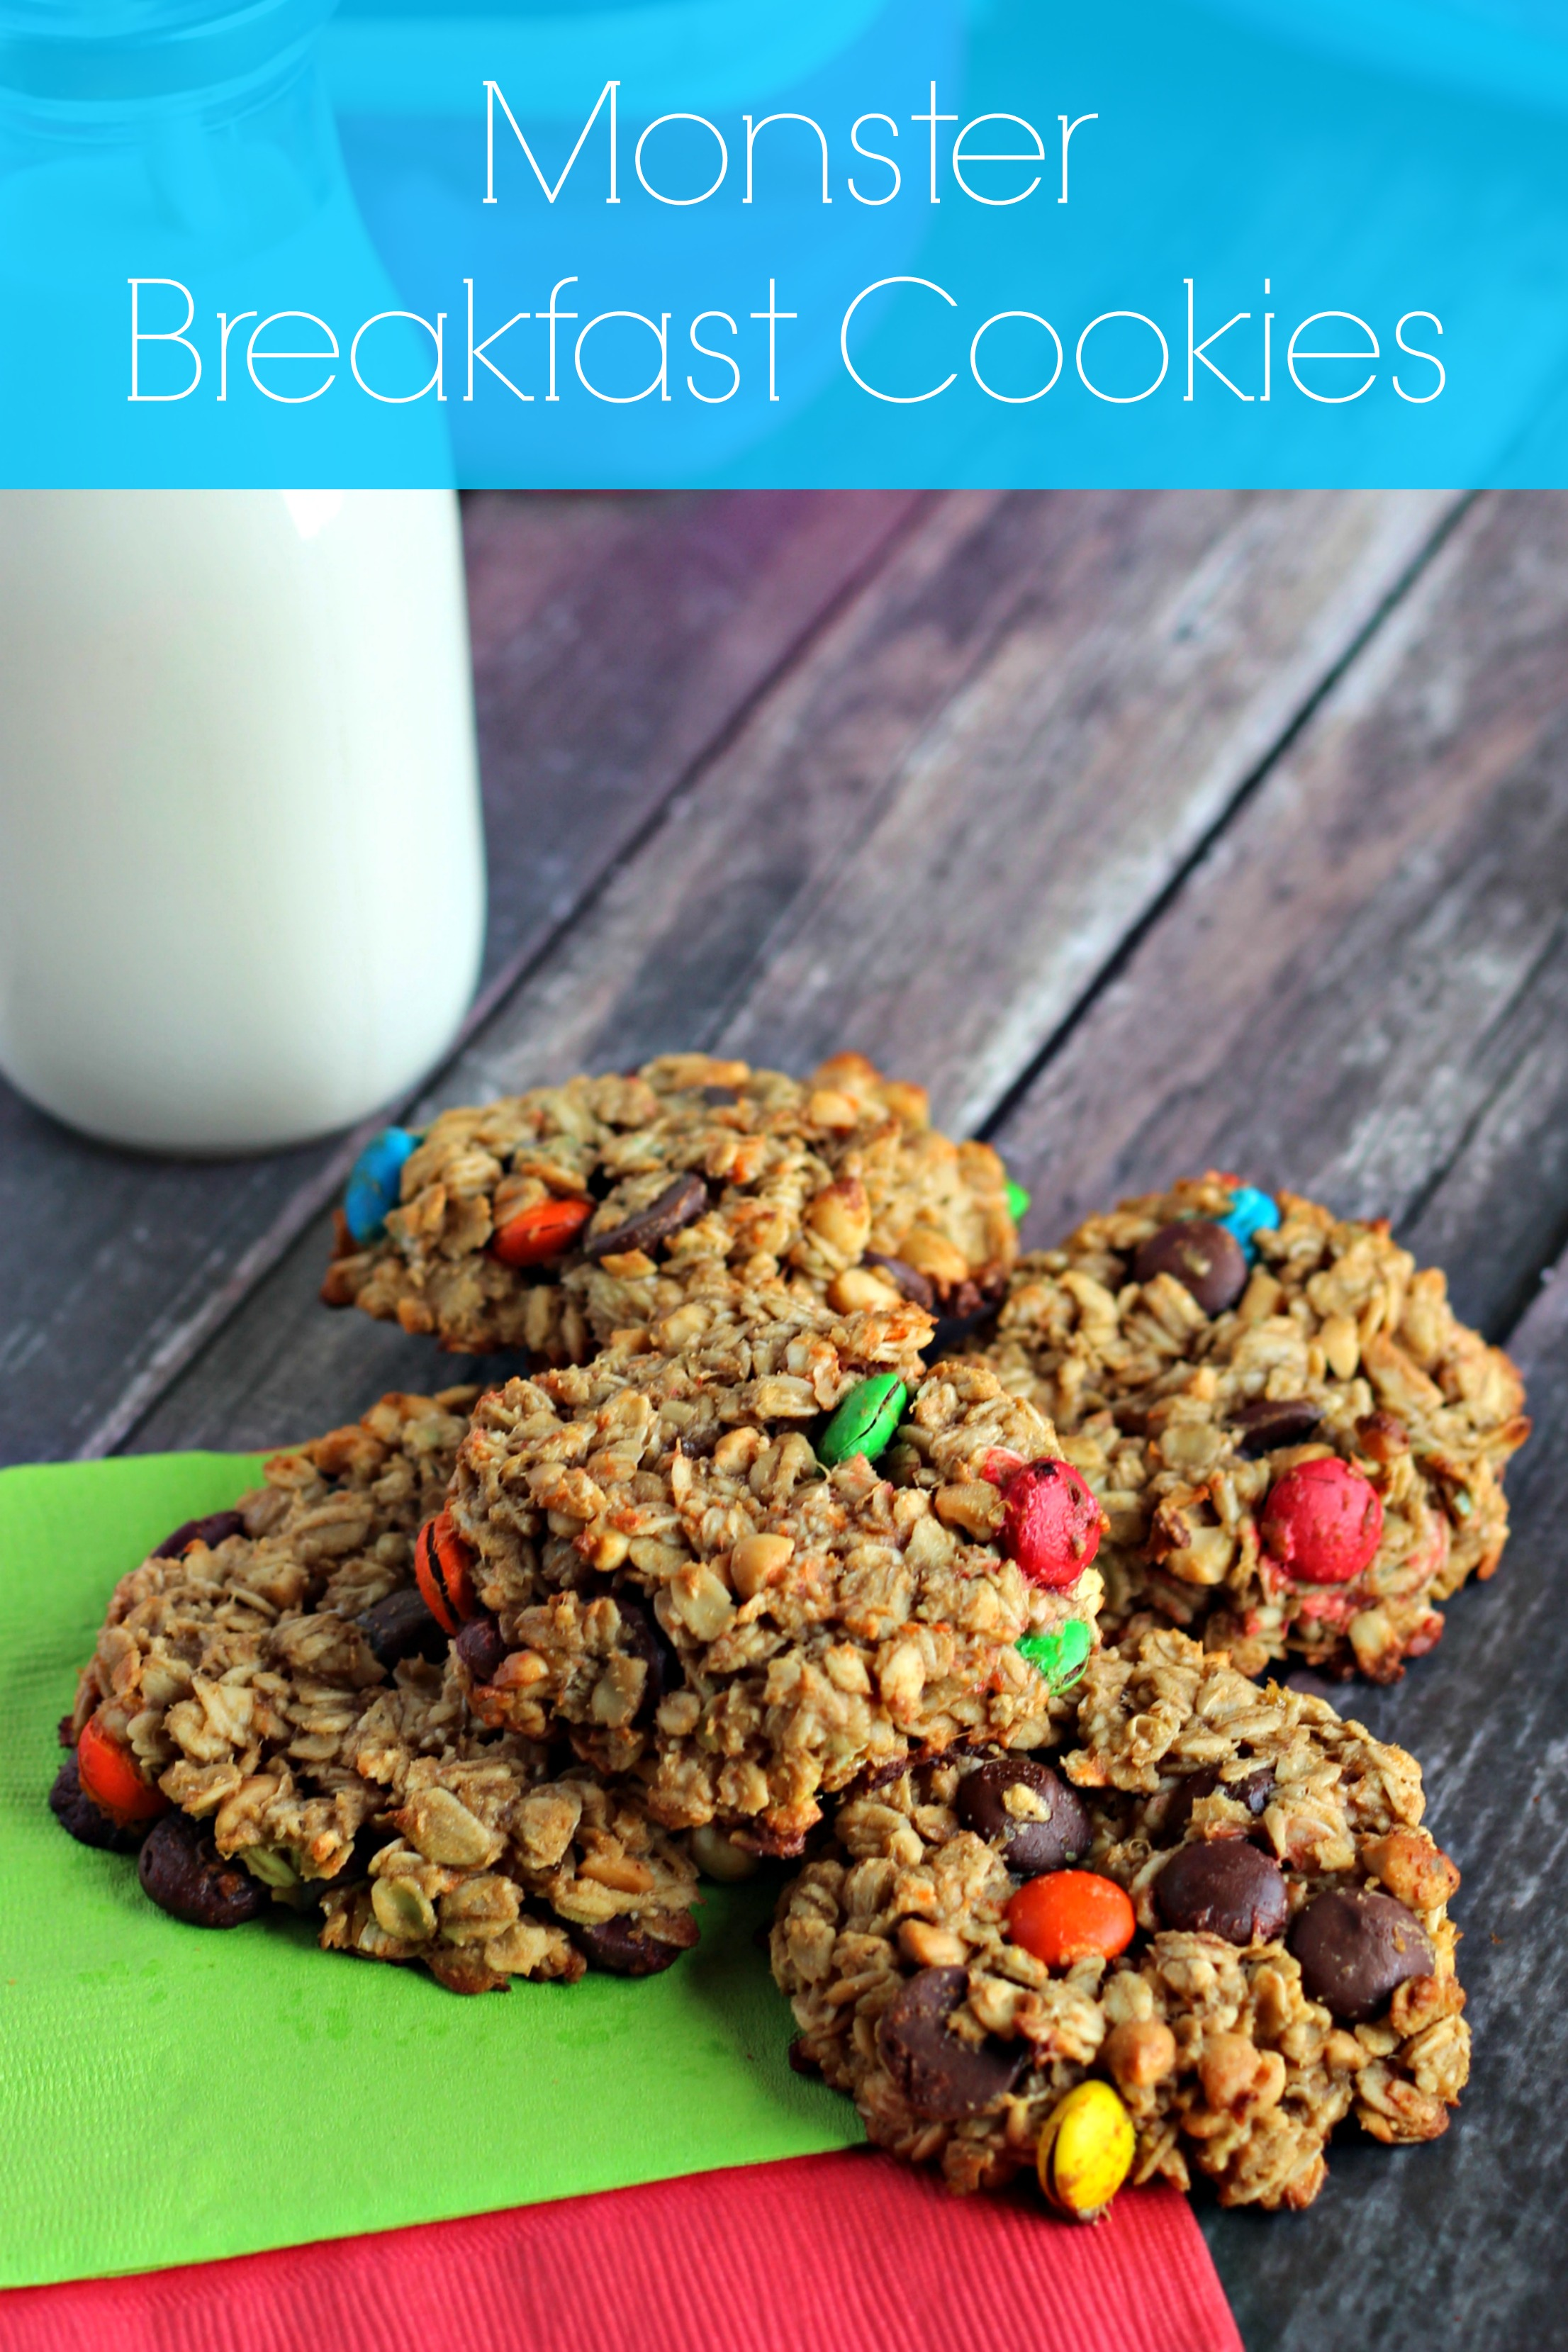 Monster Breakfast Cookies